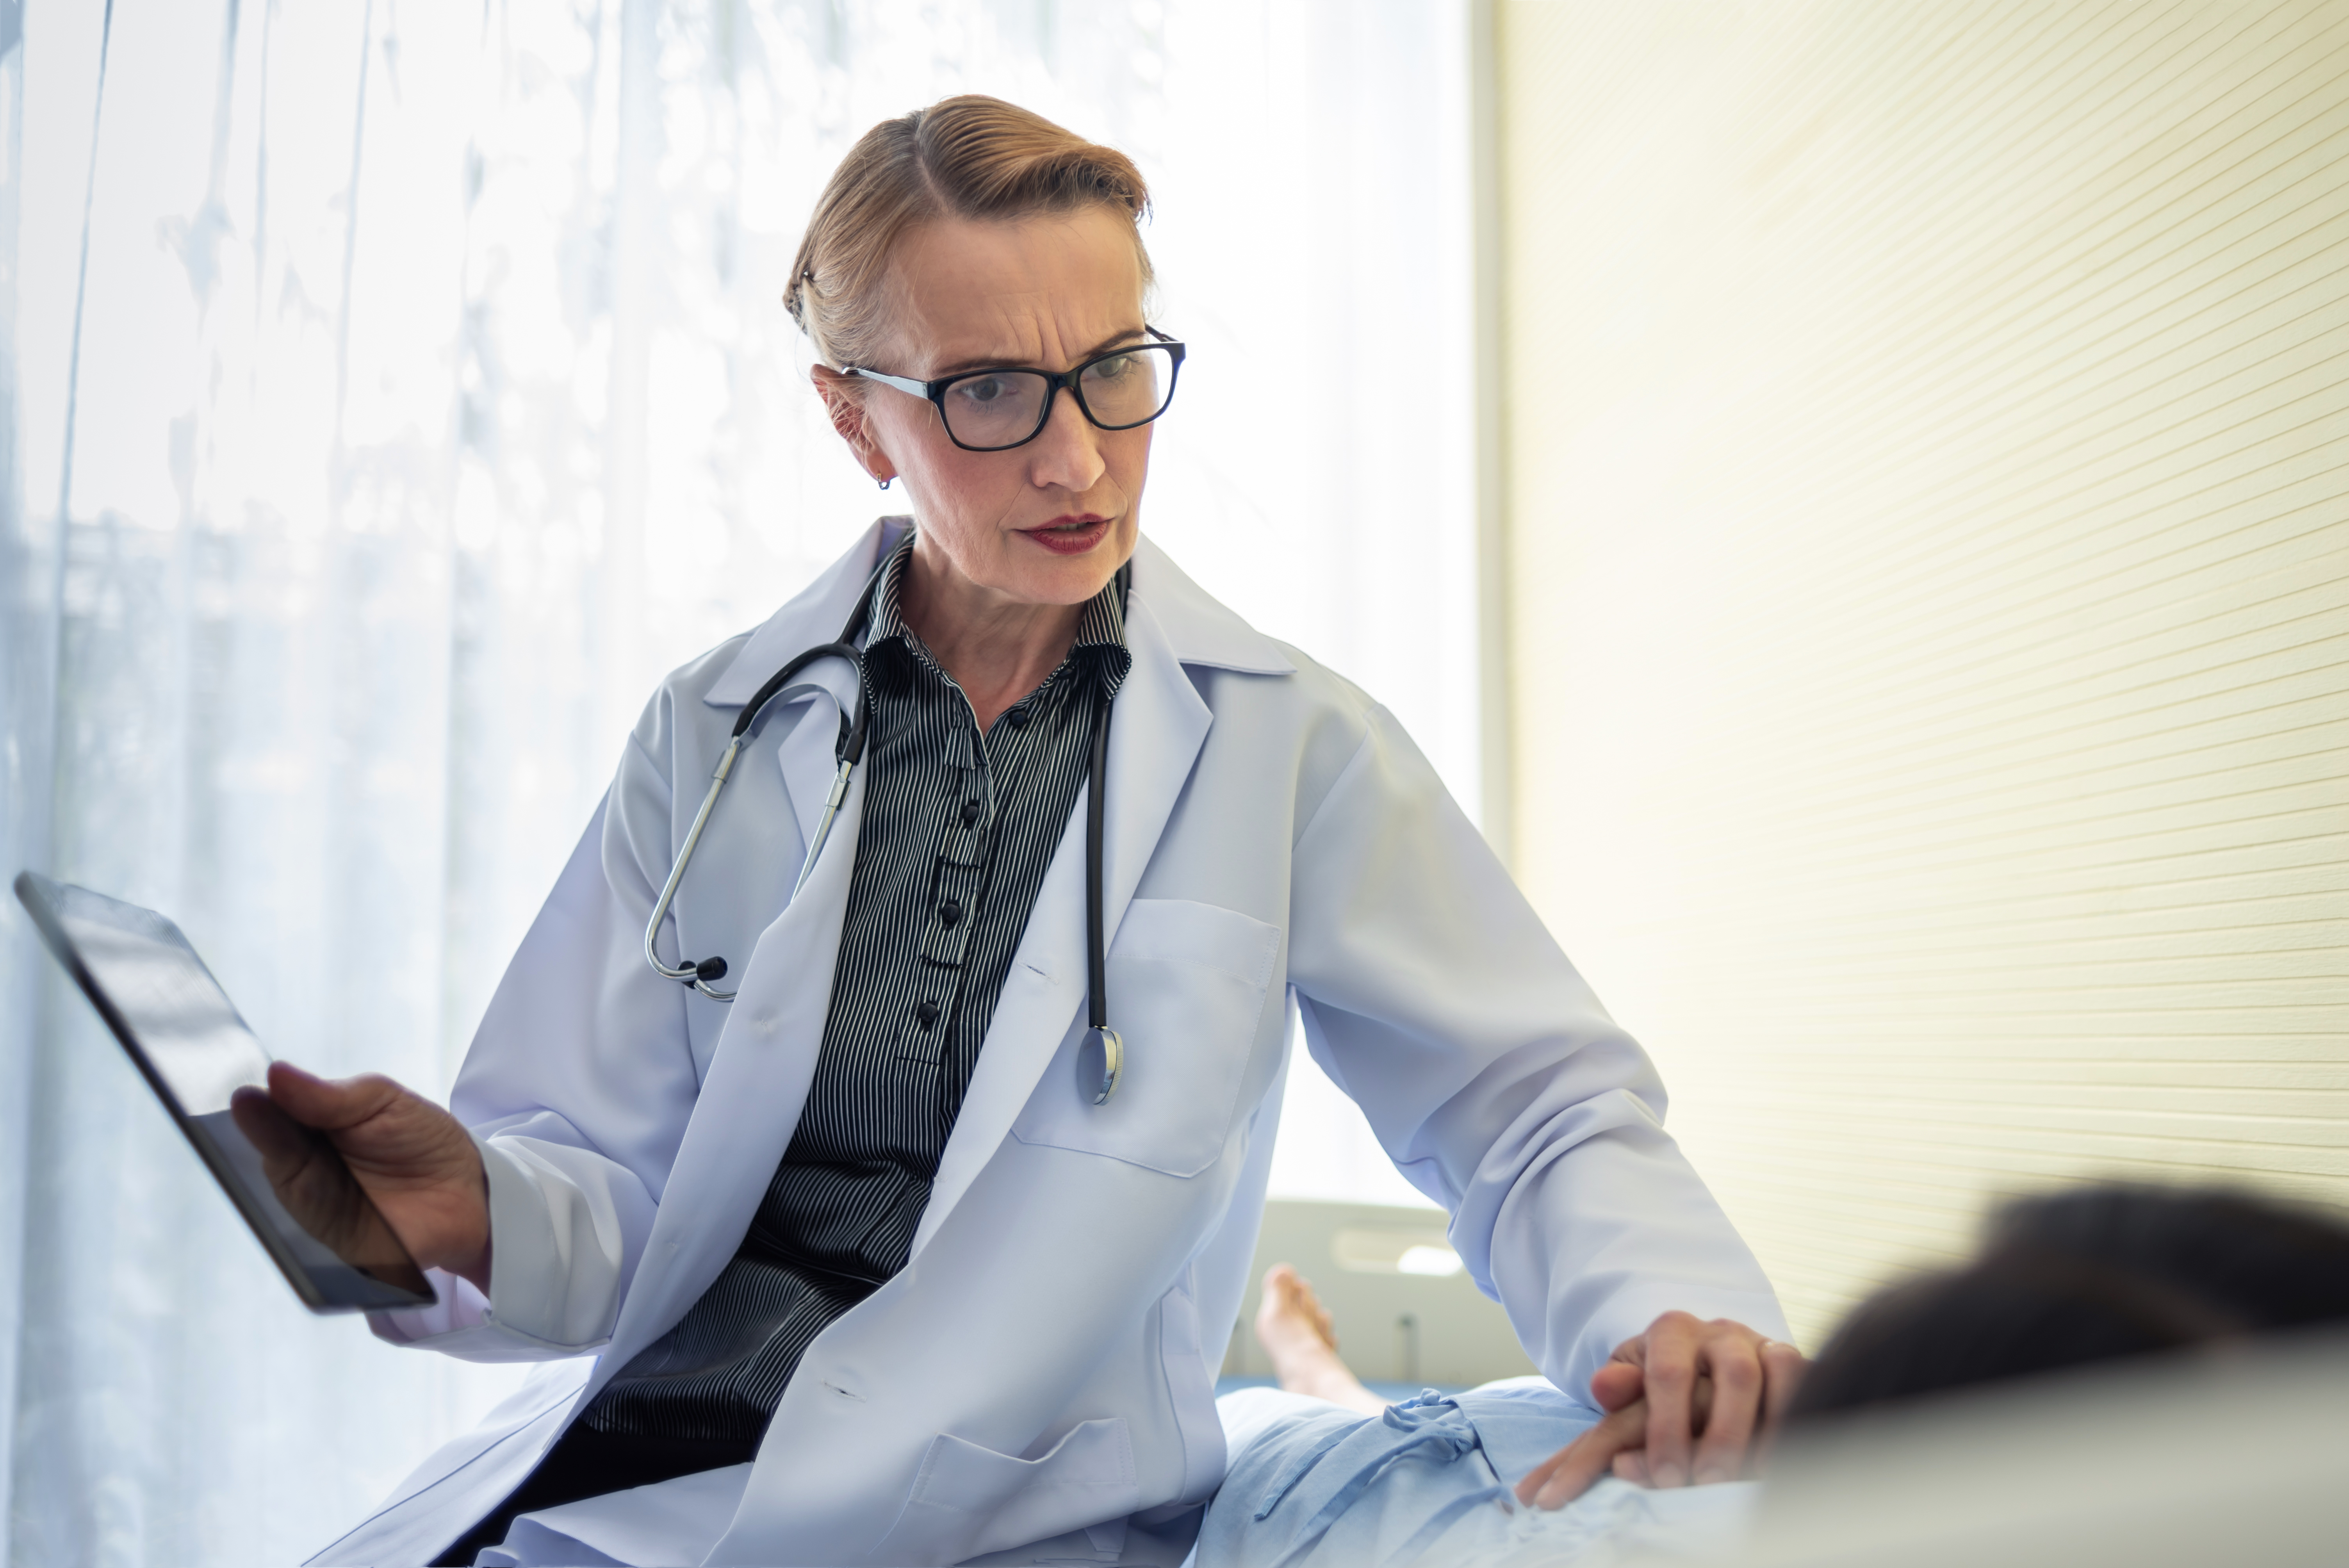 The Disadvantages of Being an OB-GYN | Career Trend